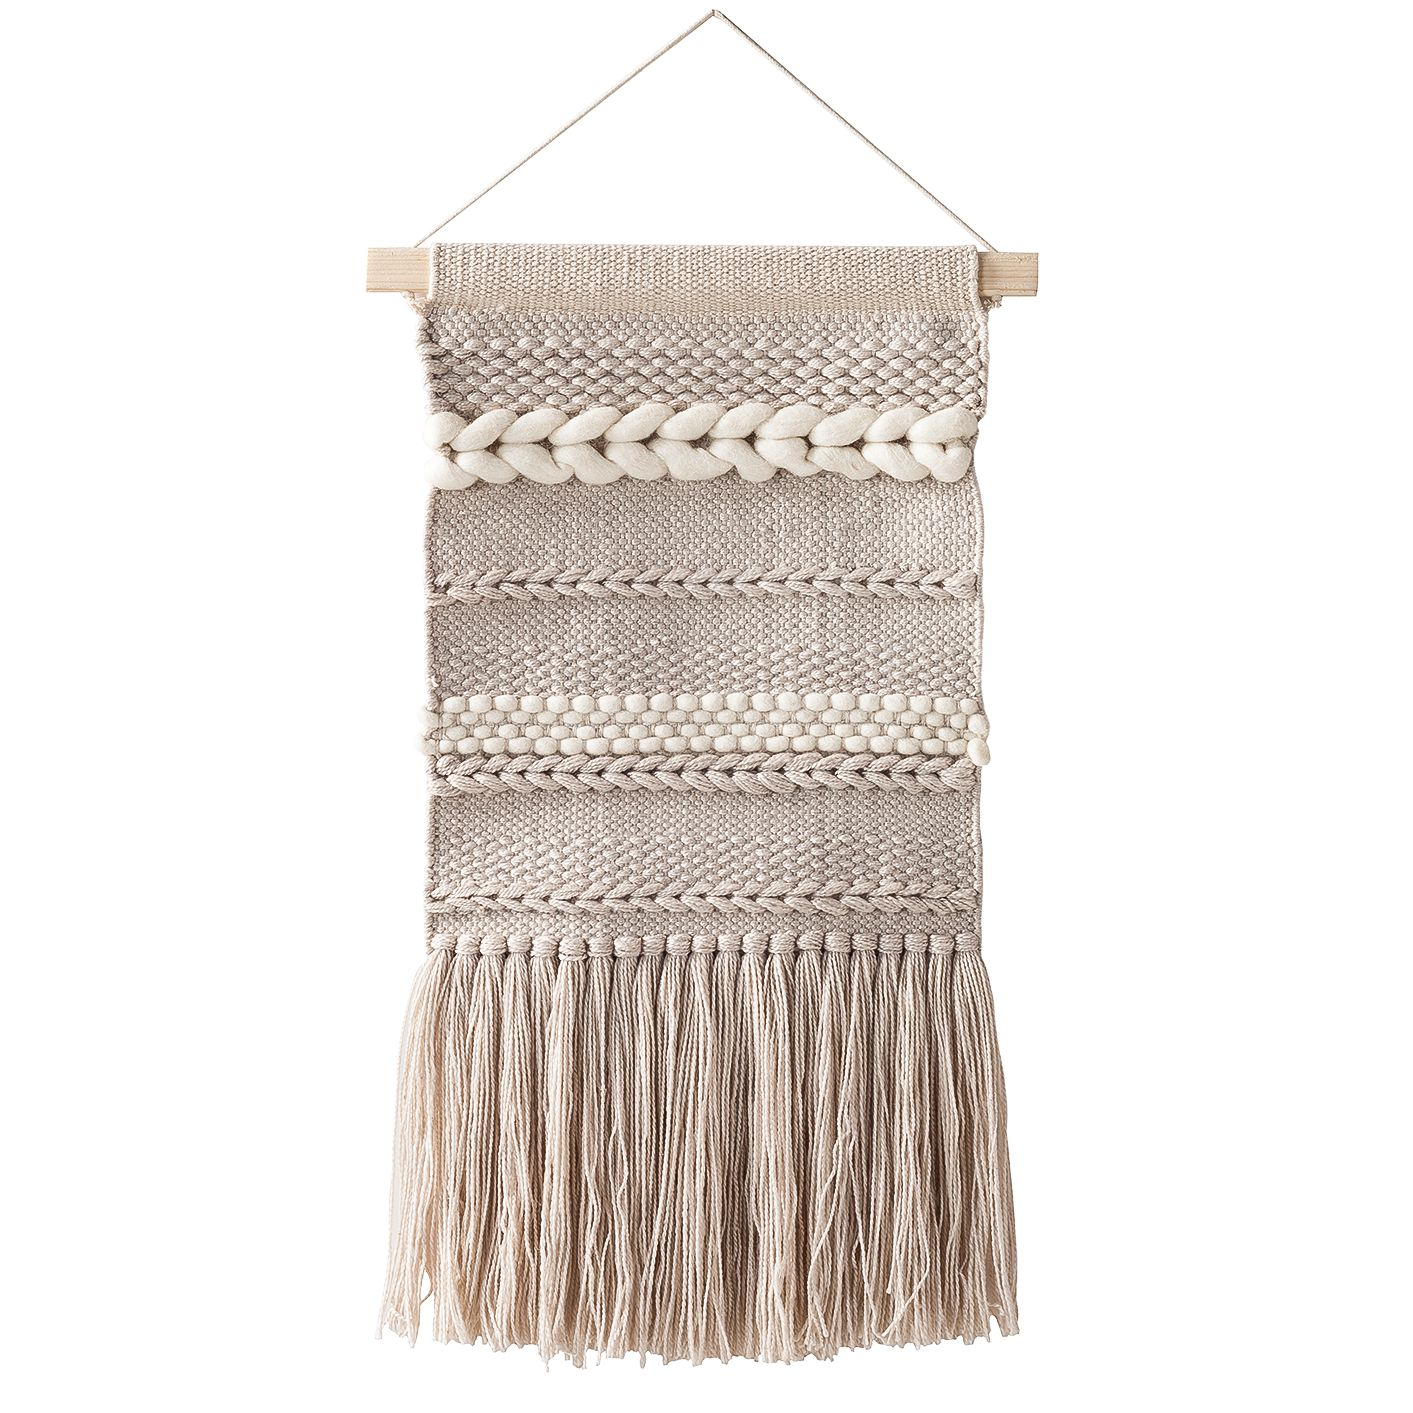 Wandbehang Chaves I - Webstoff - Beige, Eva Padberg Collection